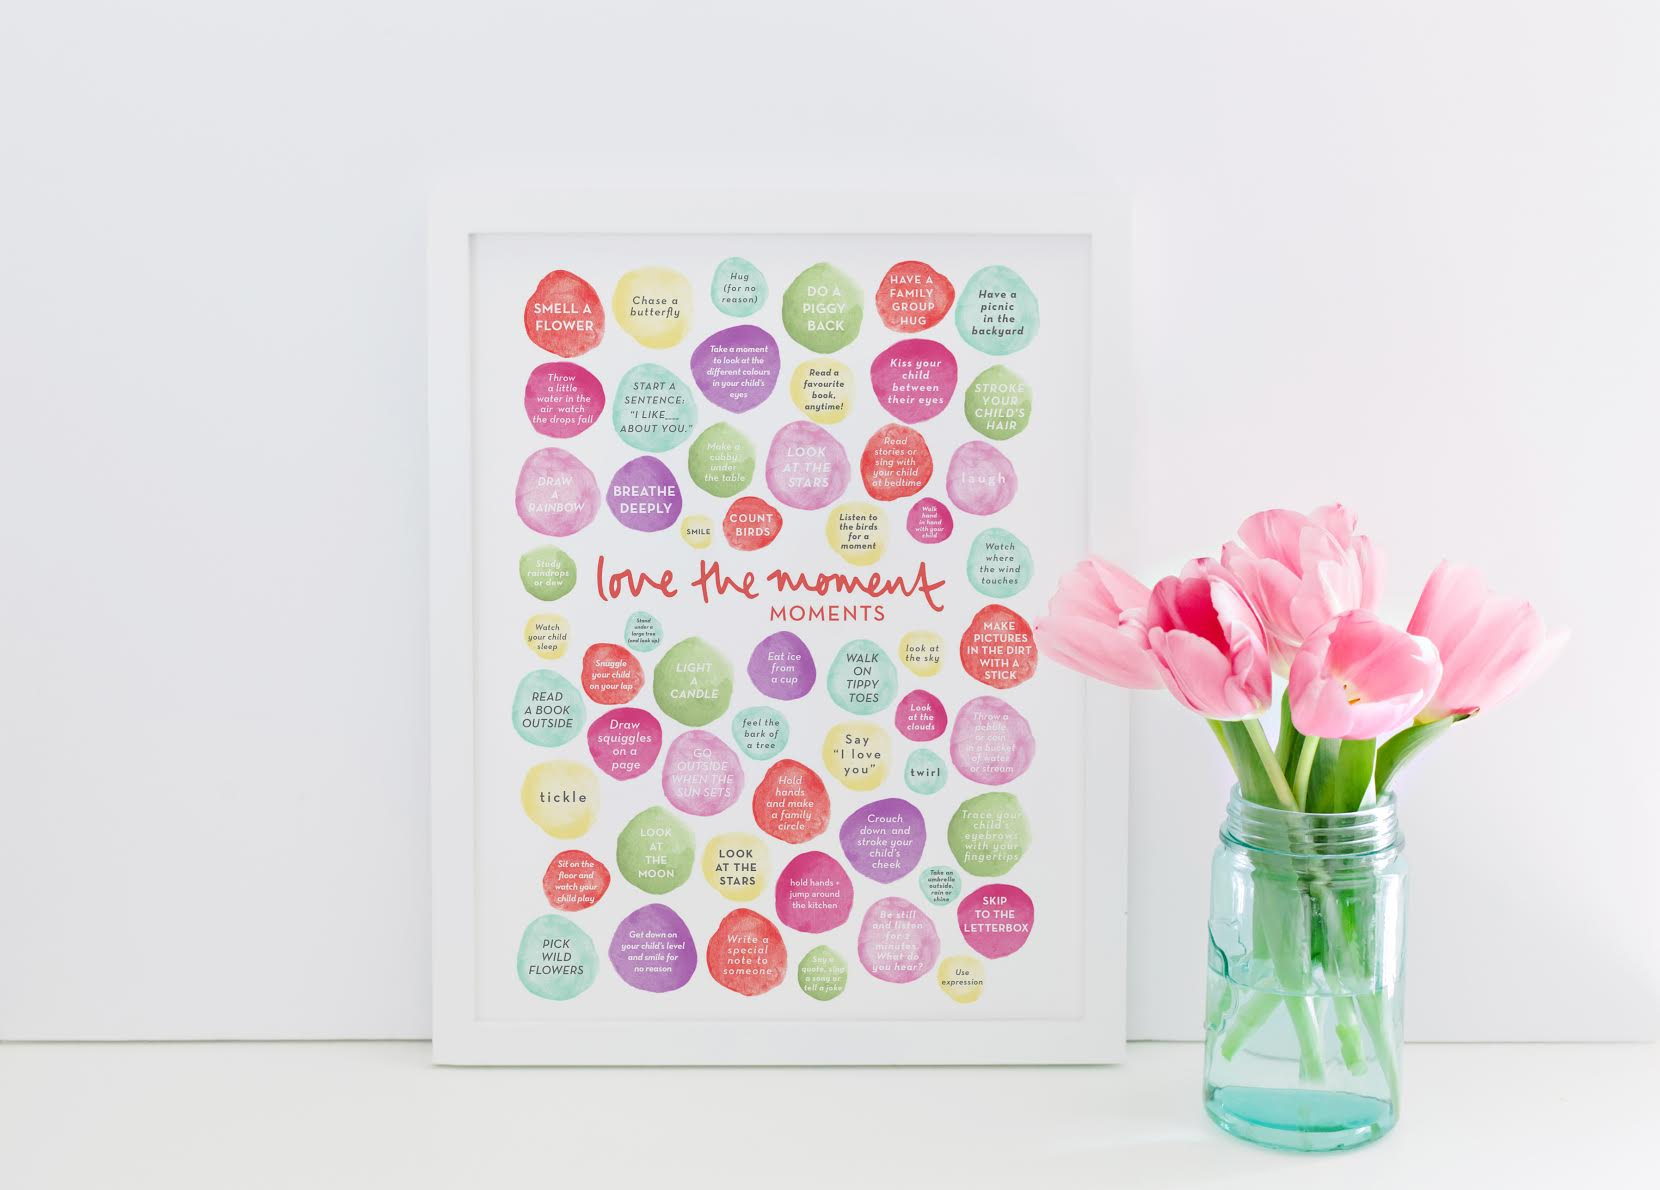 Love the moment moments - Printable Poster